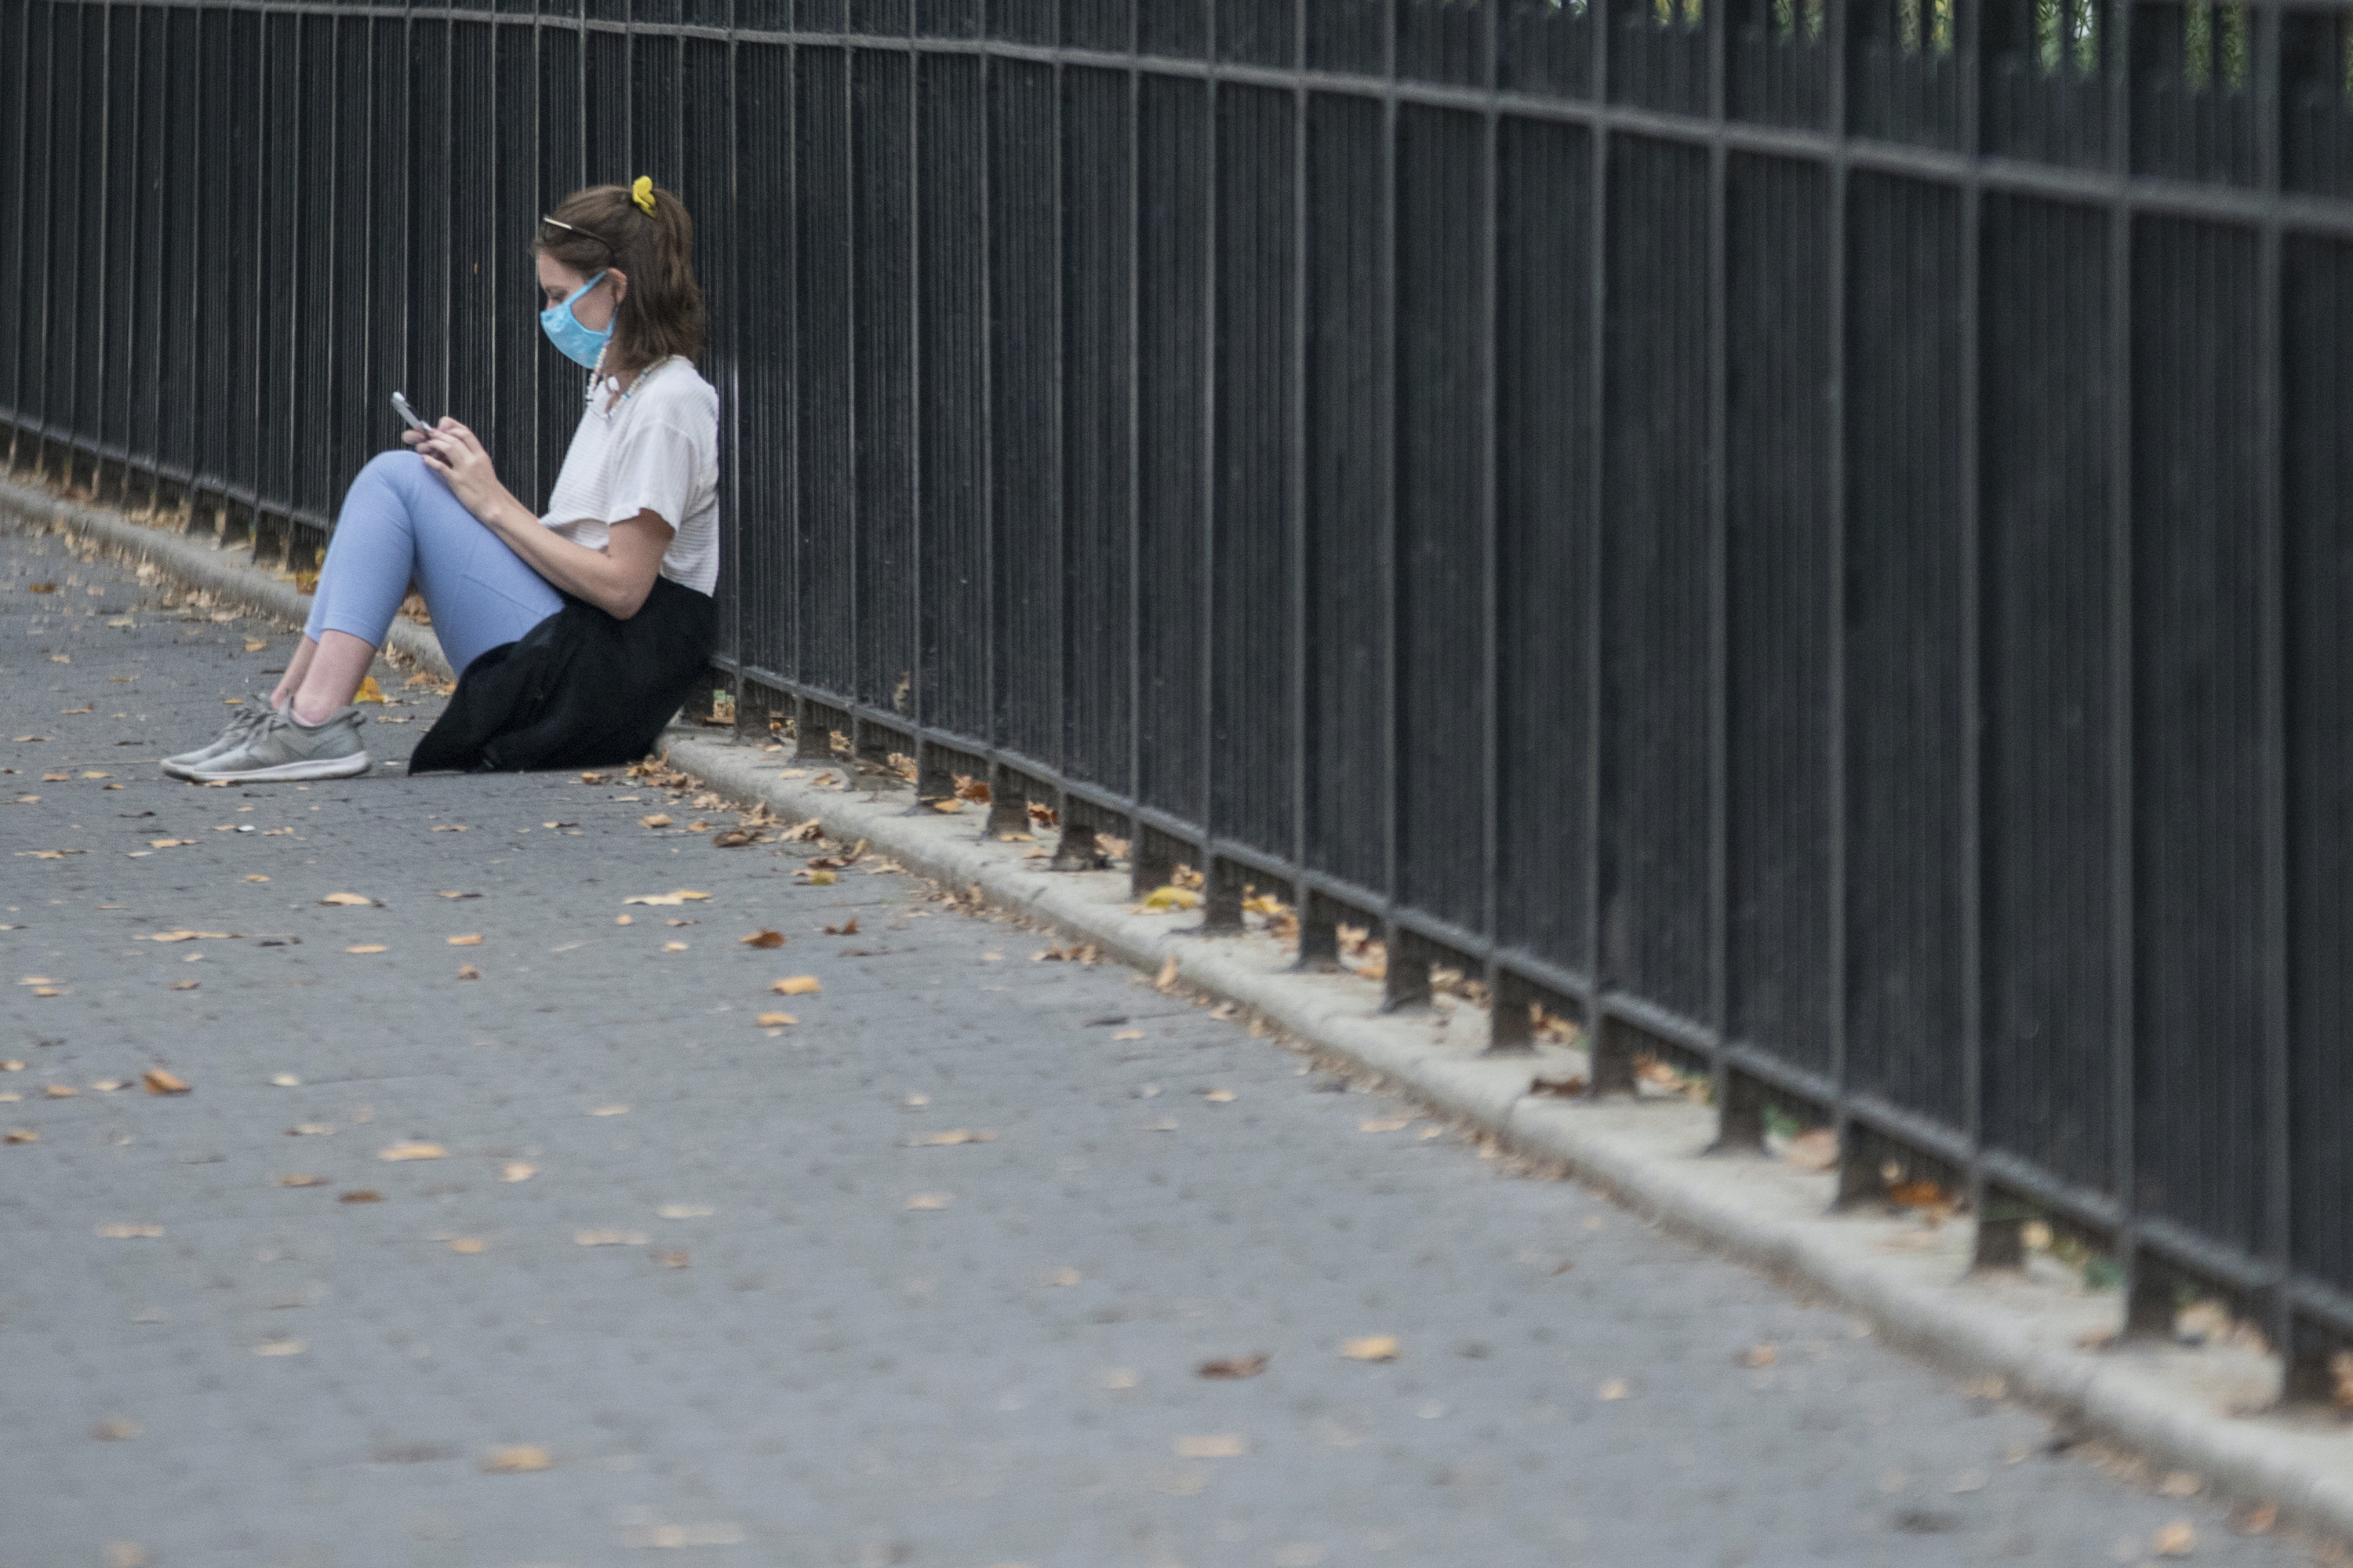 Woman on street looking at phone wearing face mask.